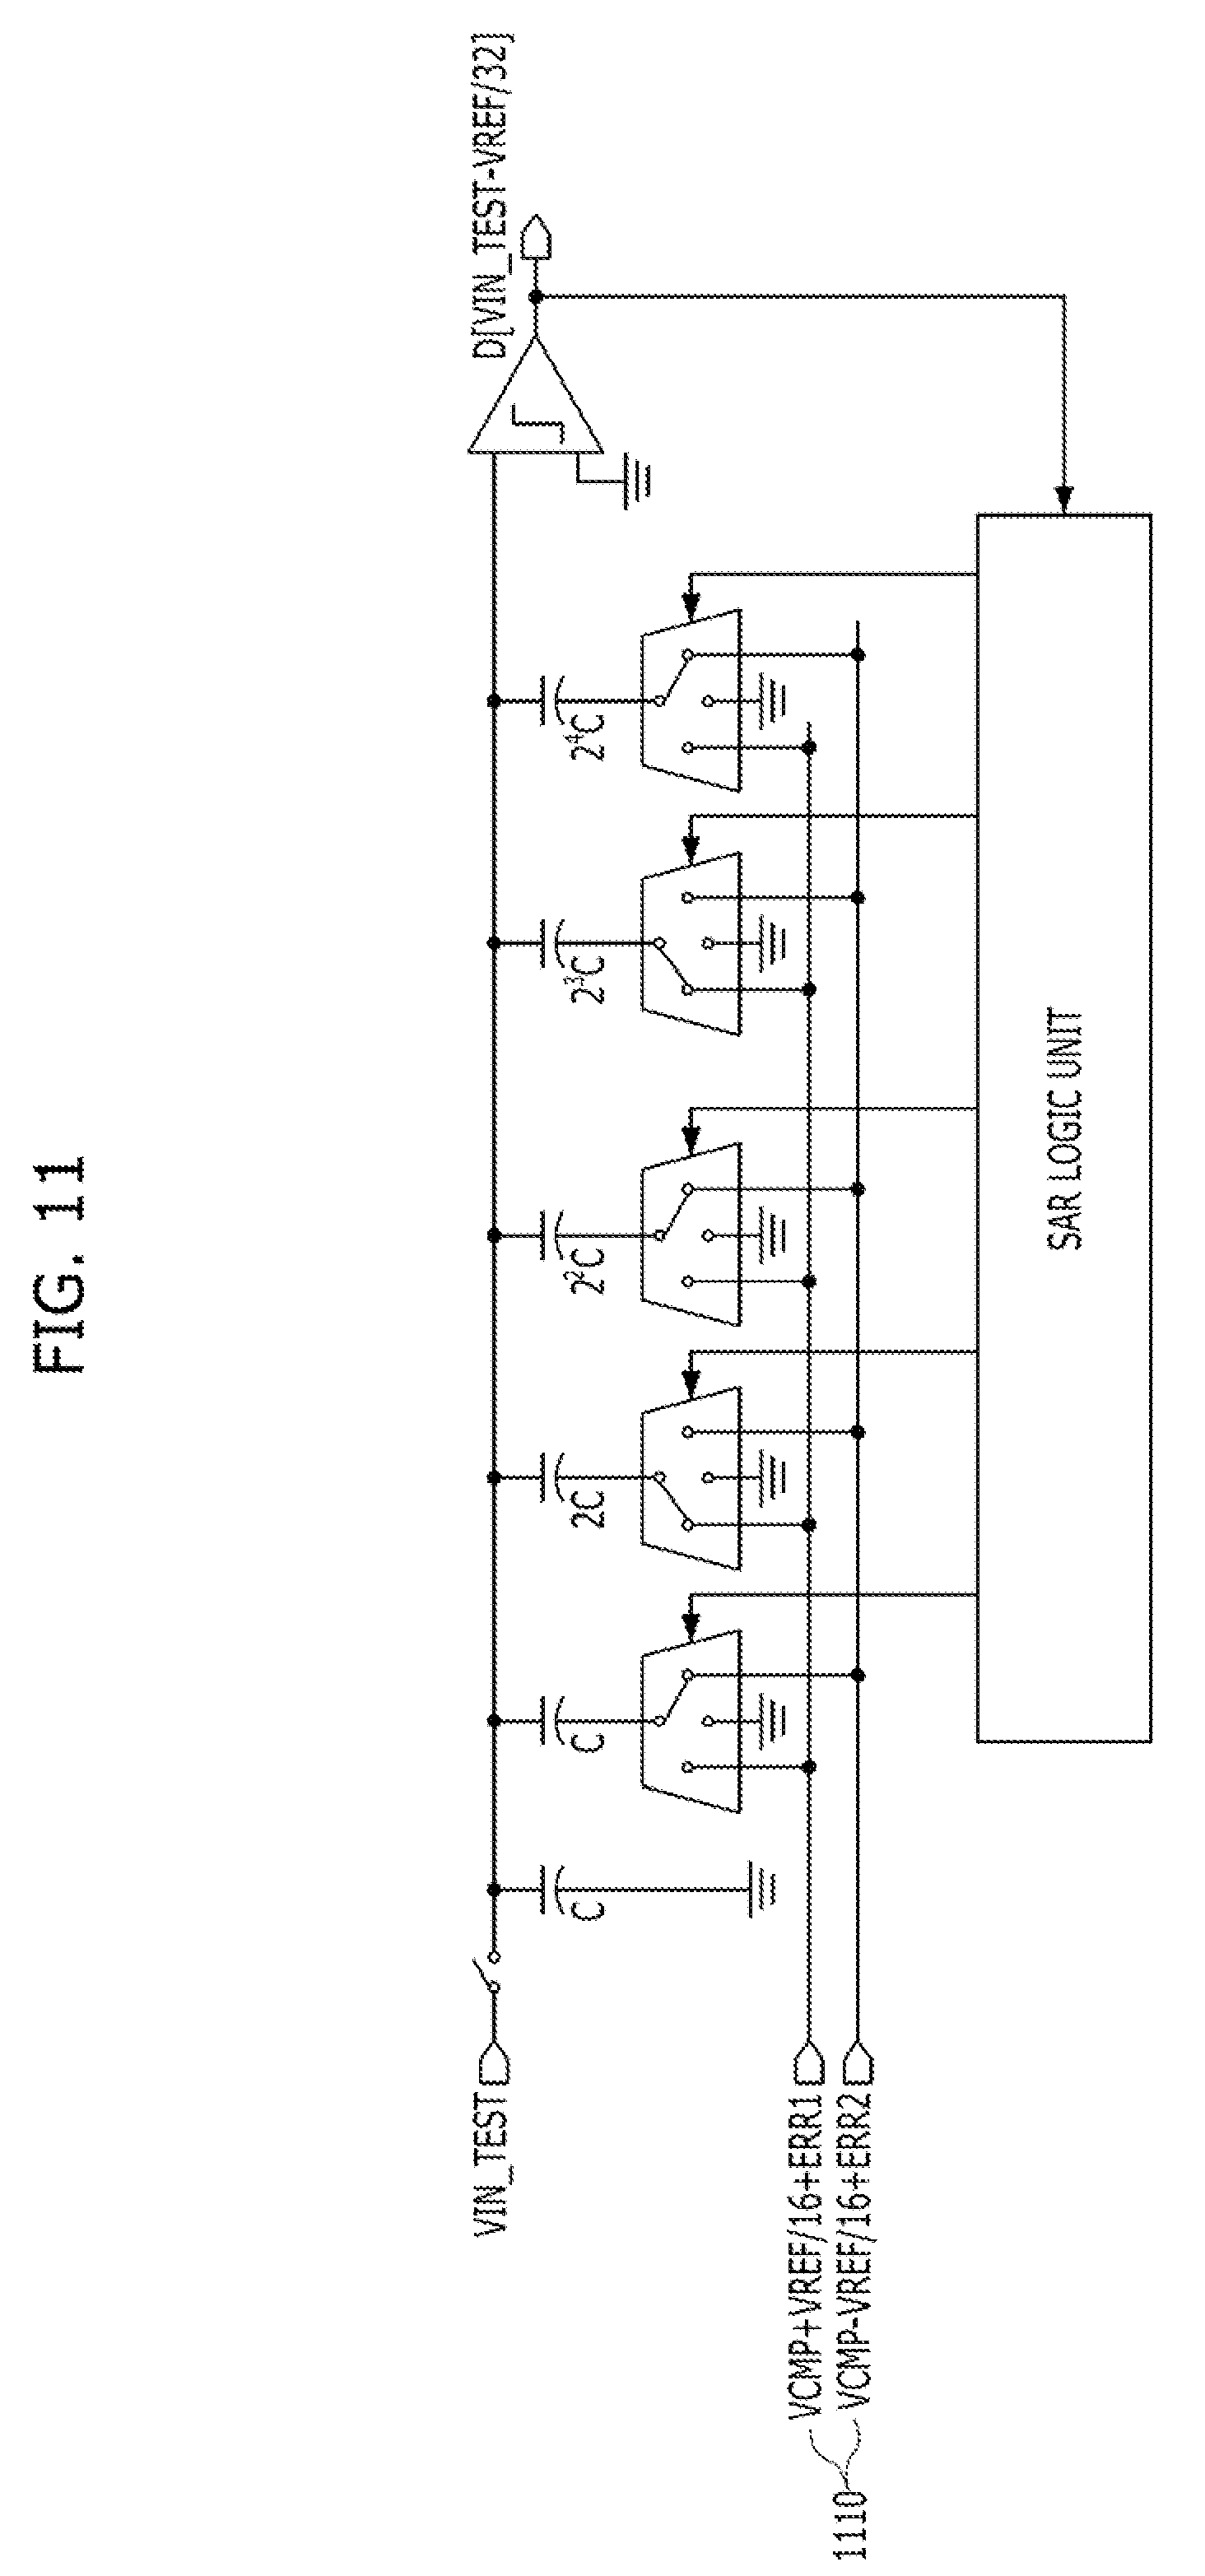 Us9231610b2 Sar Analog To Digital Converting Apparatus And Successive Approximate Adc Circuit Diagram Operating Method Thereof Cmos Image Sensor Including The Same Google Patents